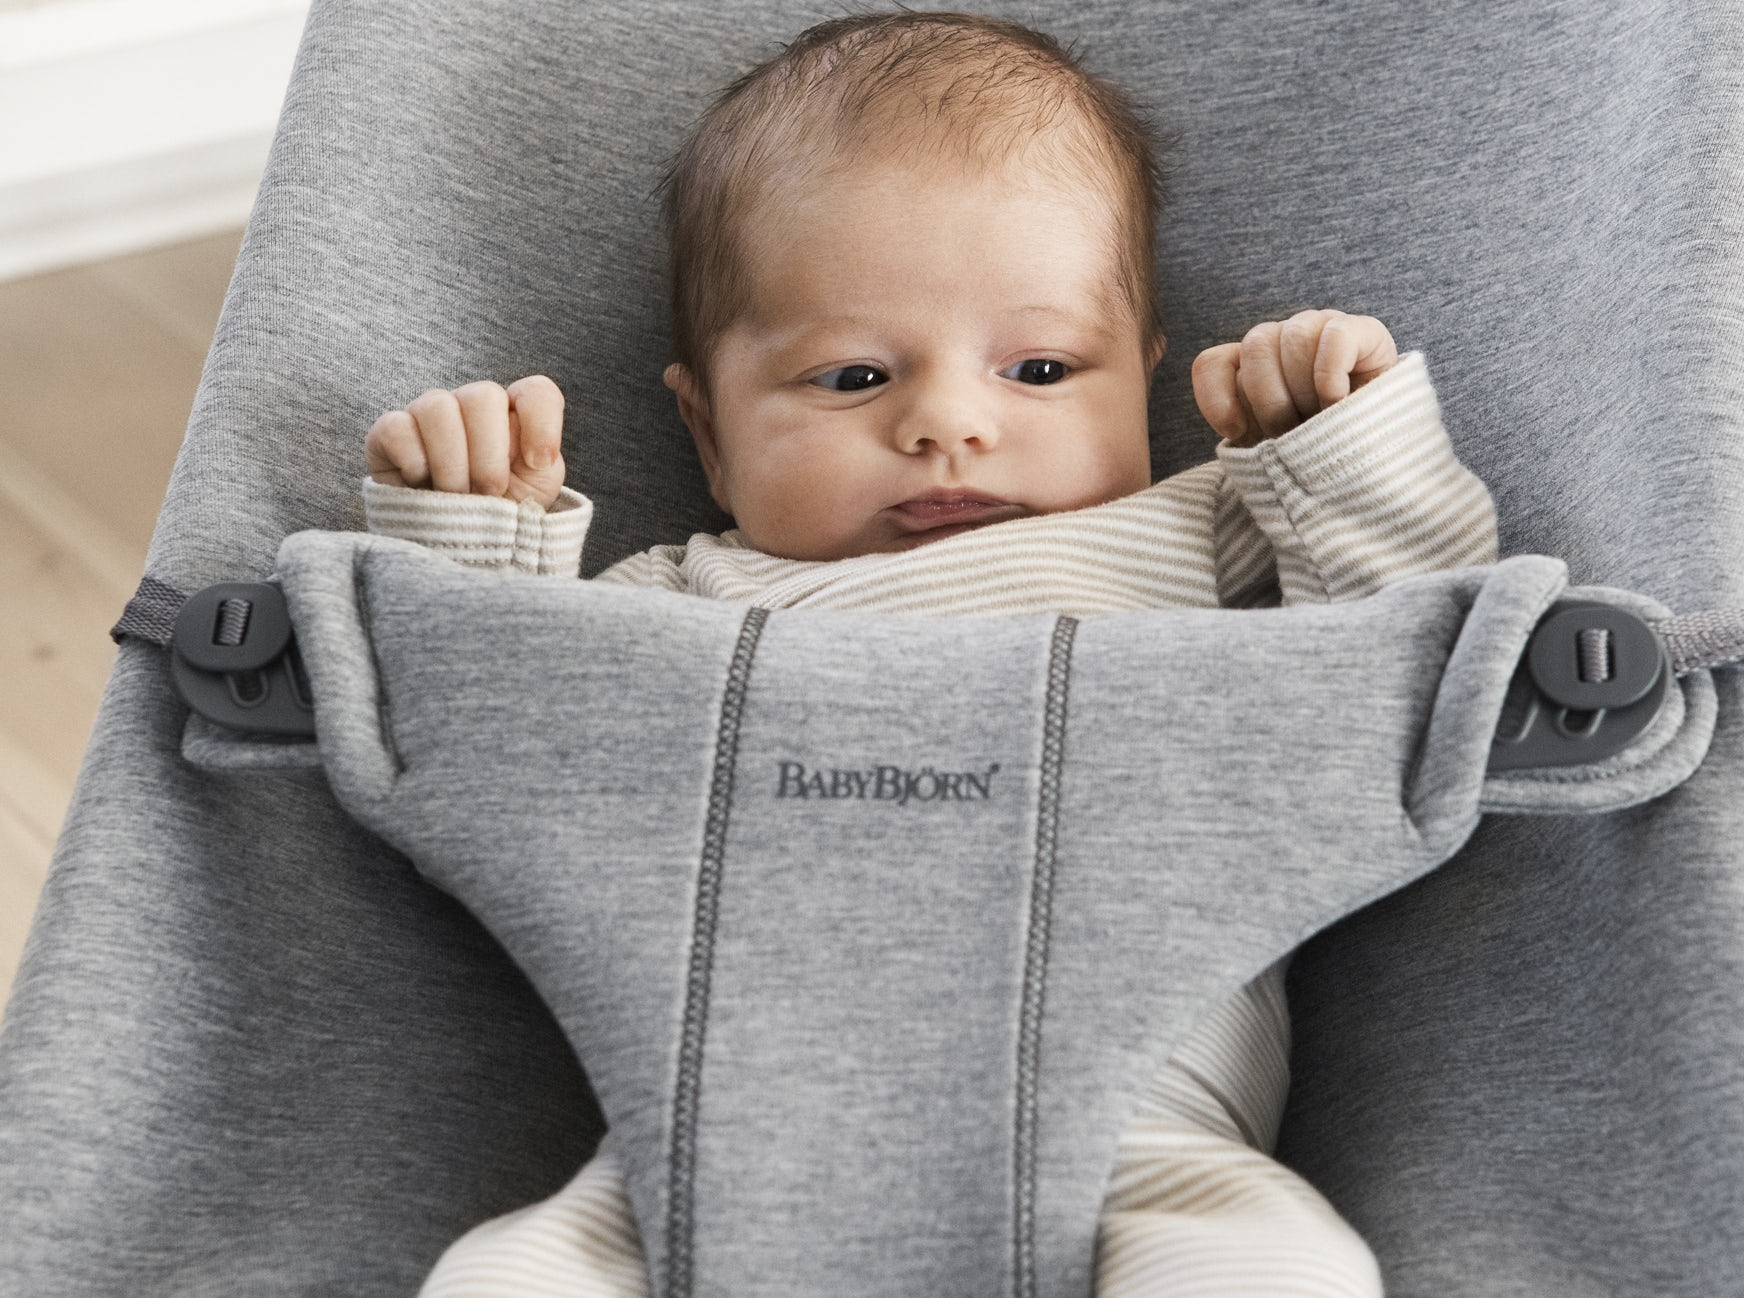 b8b45820747 Bouncer Bliss 3D Jersey Light grey 006072 - BABYBJÖRN Ergonomic baby bouncer  that gives your newborn · New Baby Bouncer Bliss Mesh Pearly pink ...